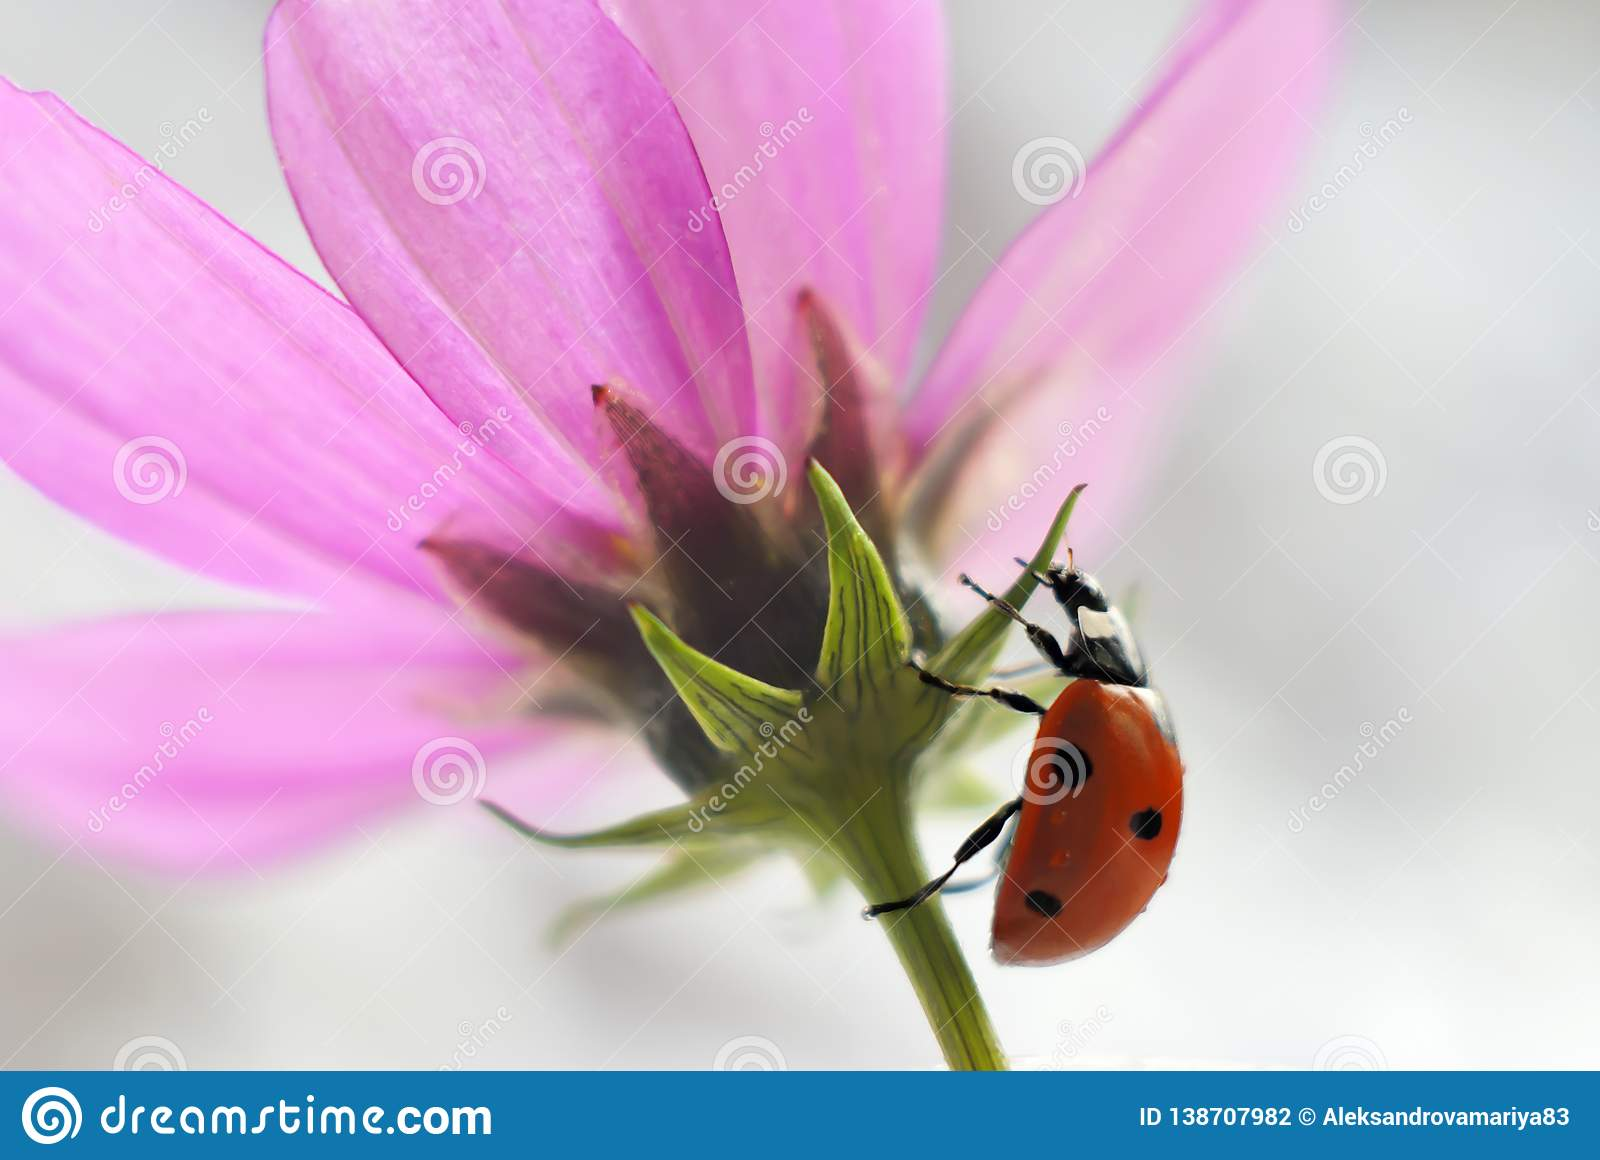 Close-up of a ladybug on a pink flower